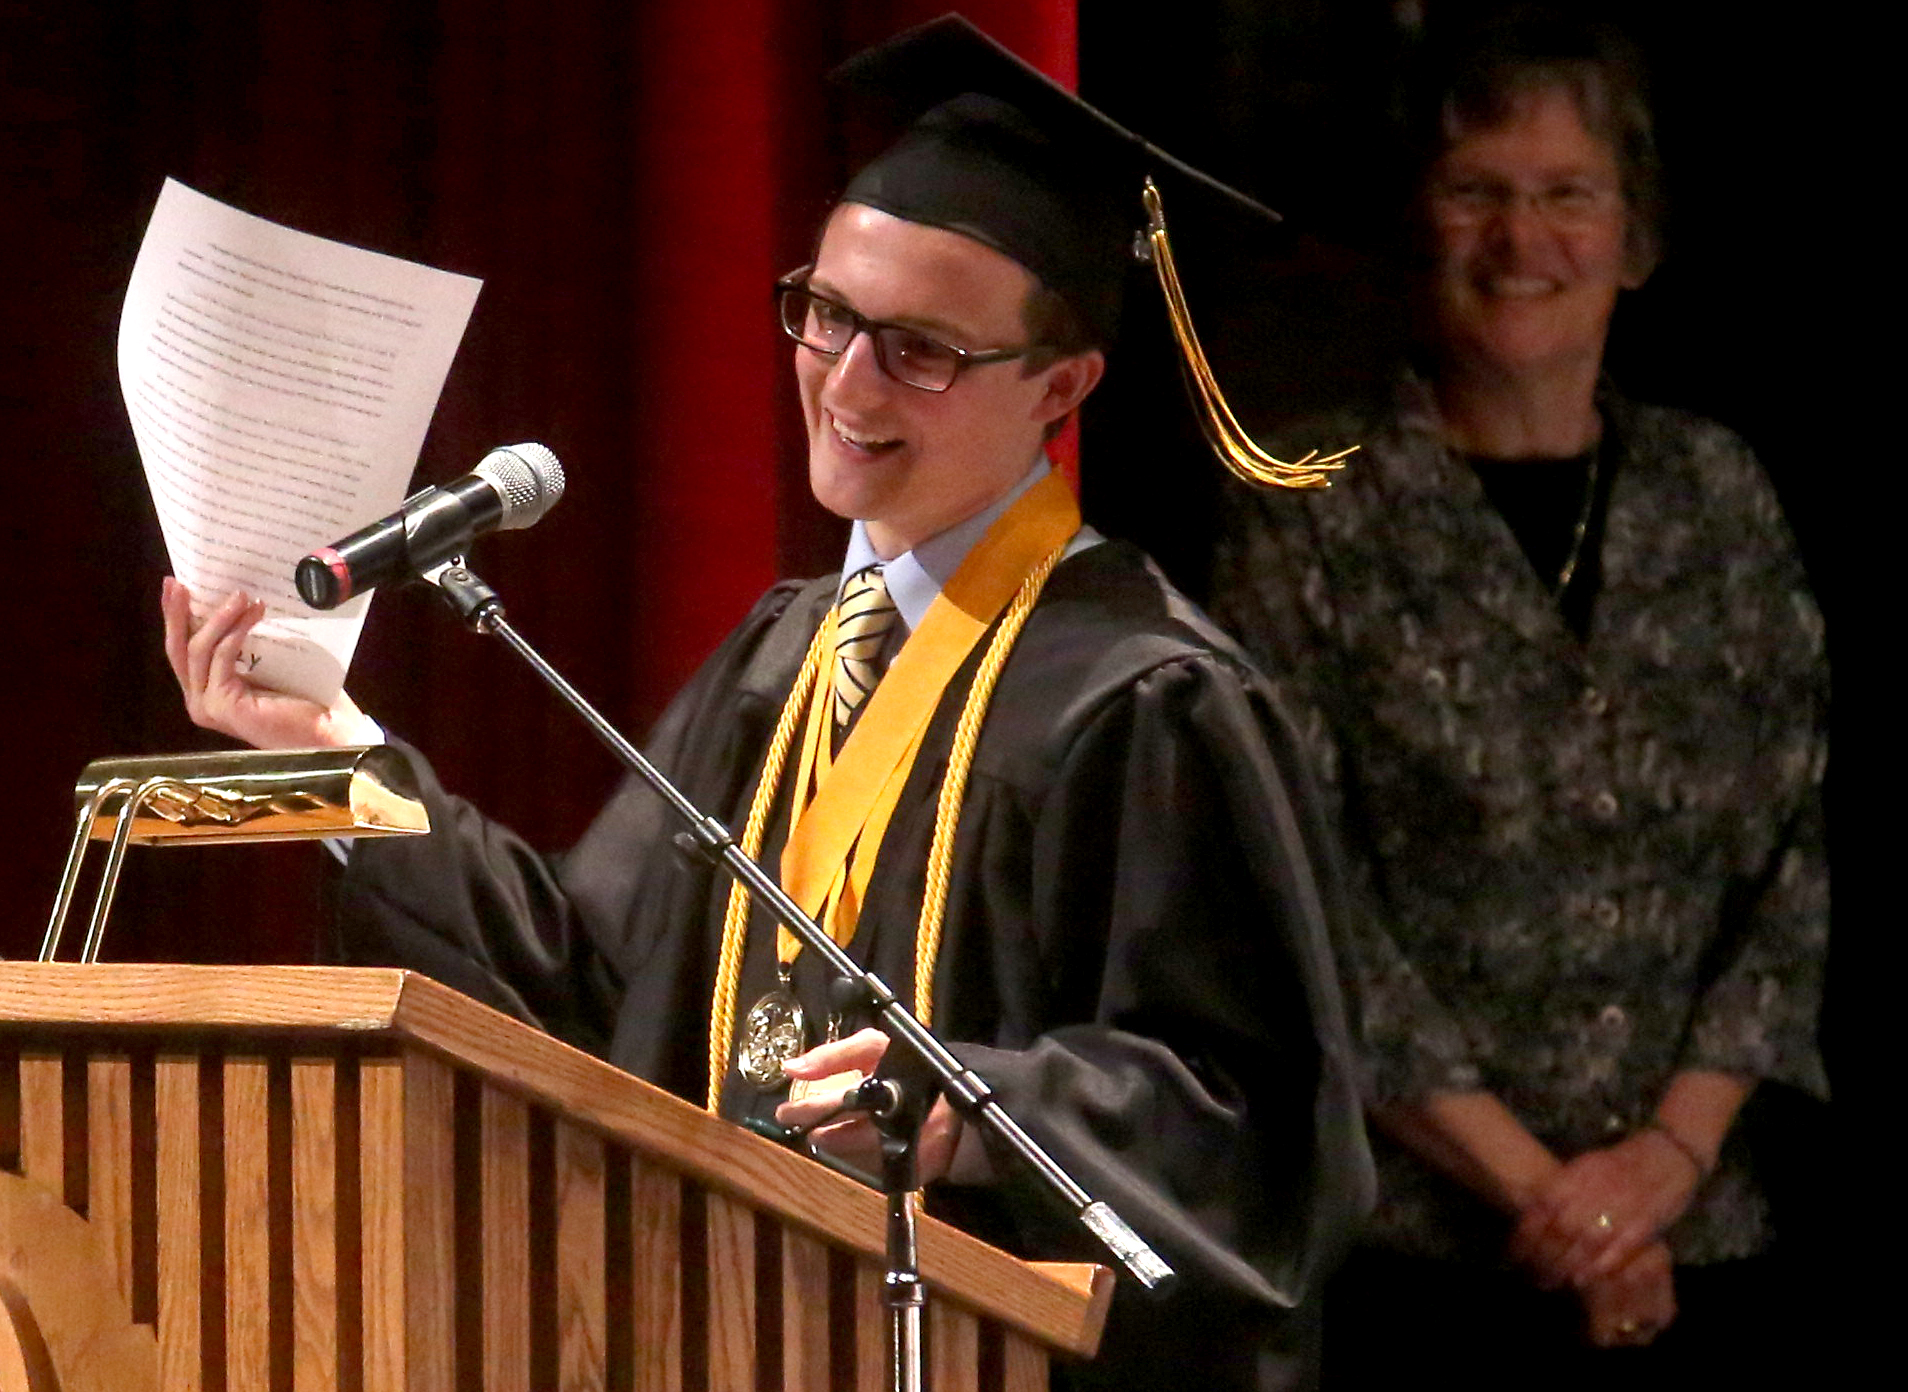 """Among other things, Valedictorian Louis Connelly, quoting Russian cultural-historical psychology founder Lev Vygotsky, challenged his classmates to embrace the following quote attributed to Vygotsky : """"Through others we become ourselves"""", during his speech Sunday. David Spencer/The State Journal-Register"""